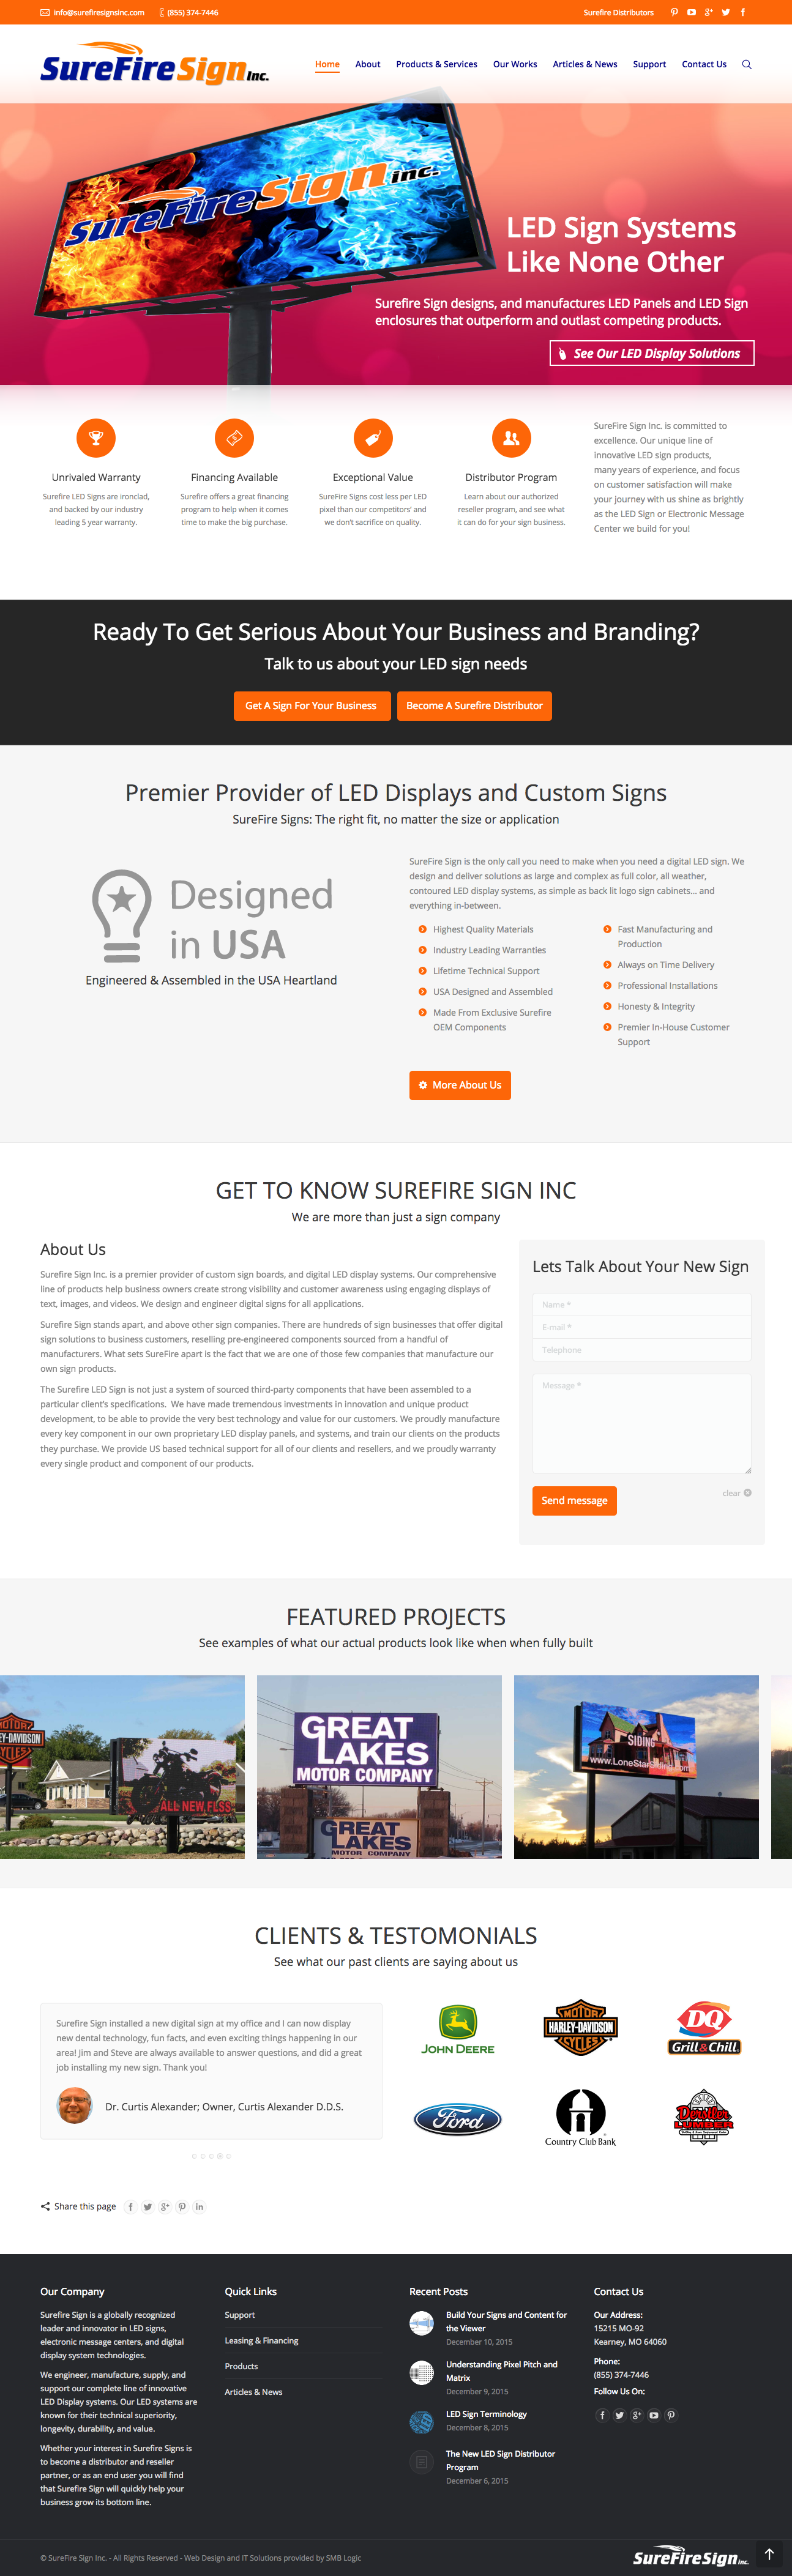 full page screen grab of surefire sign home page